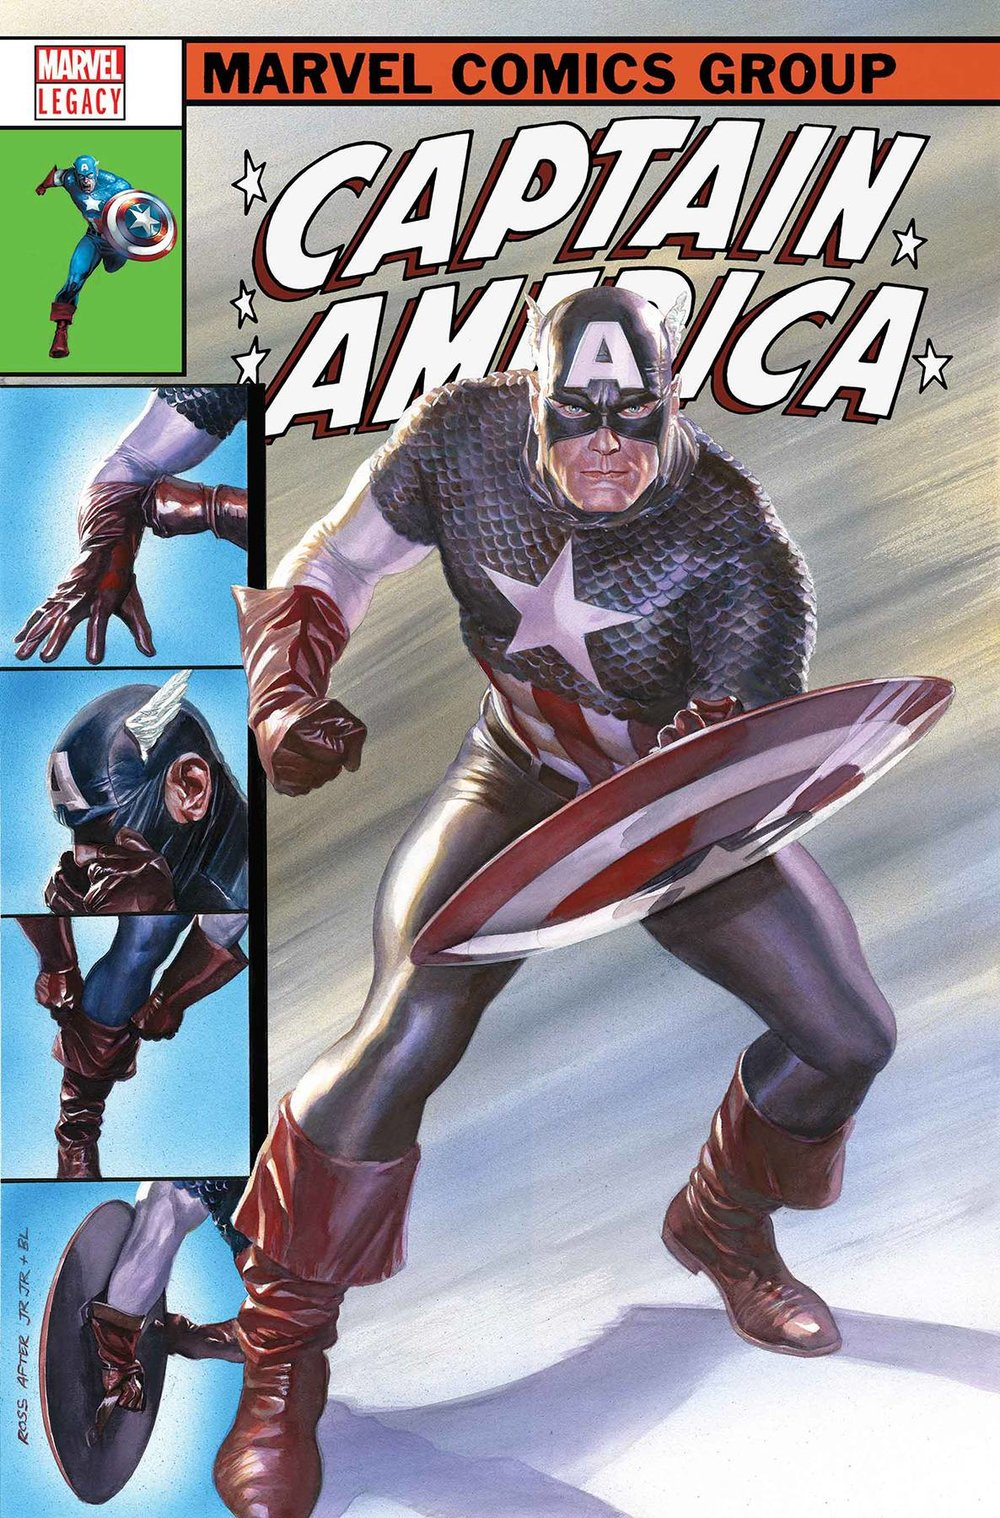 CAPTAIN AMERICA 695 ALEX ROSS LH VAR LEG.jpg